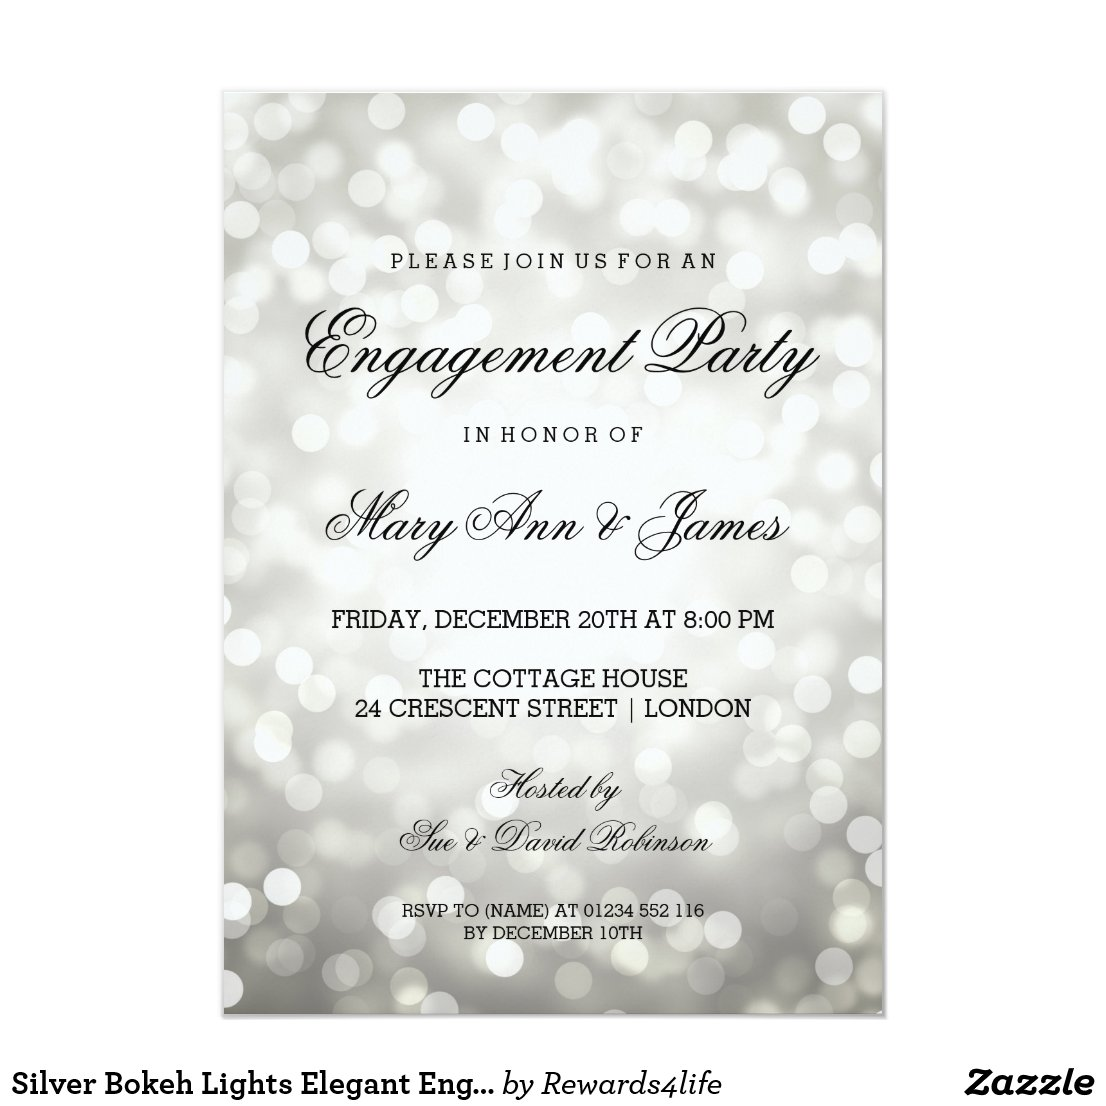 Silver Bokeh Lights Elegant Engagement Party Invitation